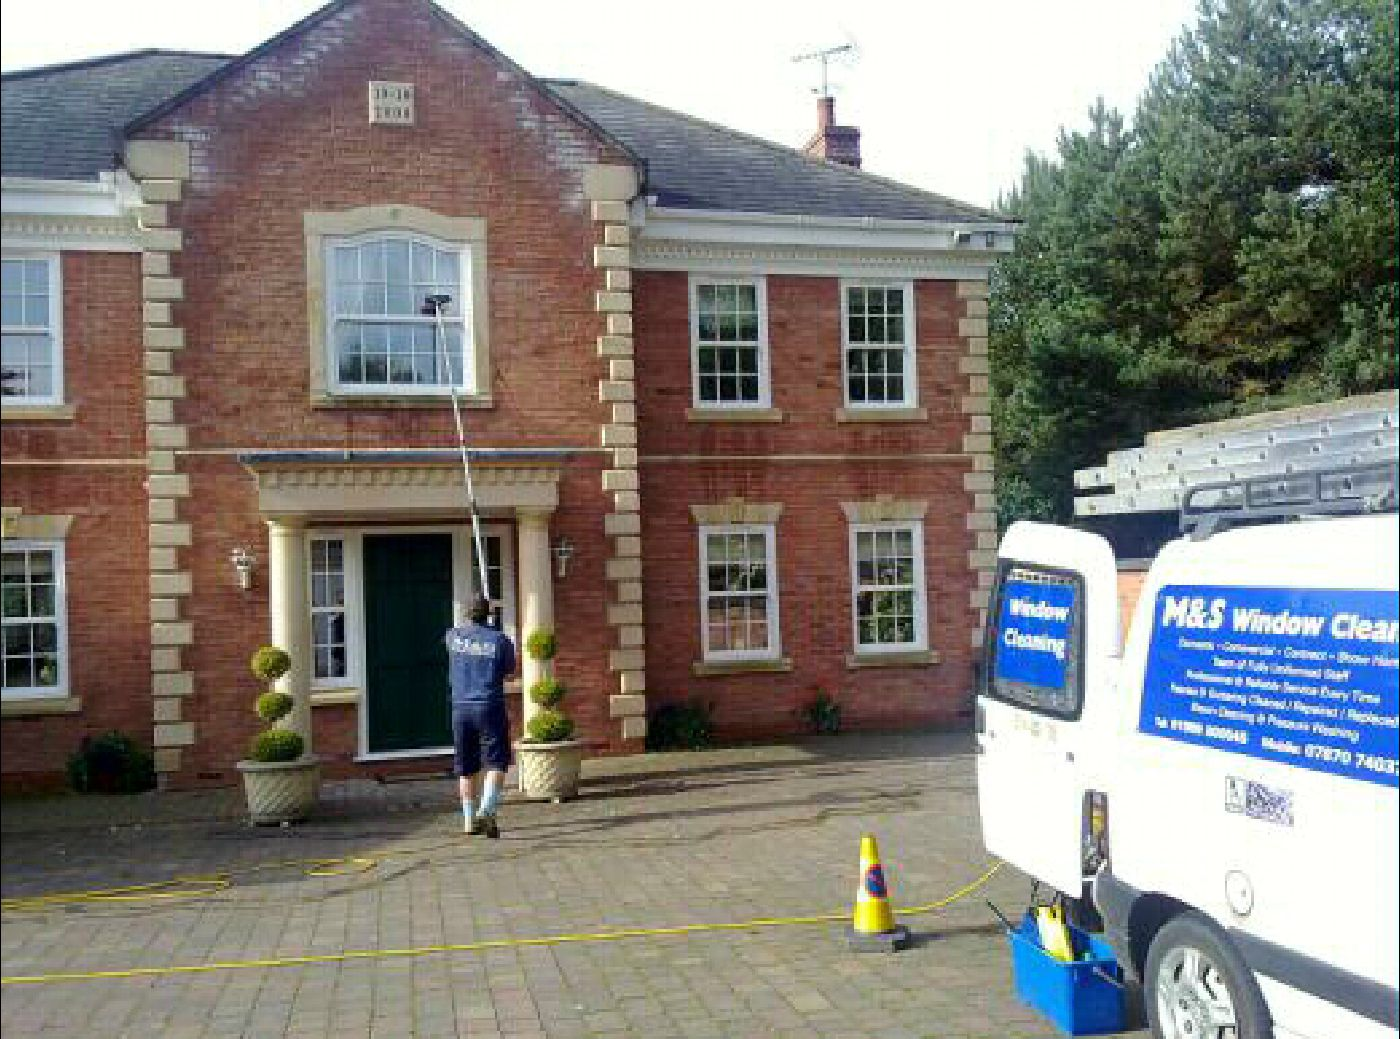 M Amp S Window Cleaning Rugeley Staffordshire